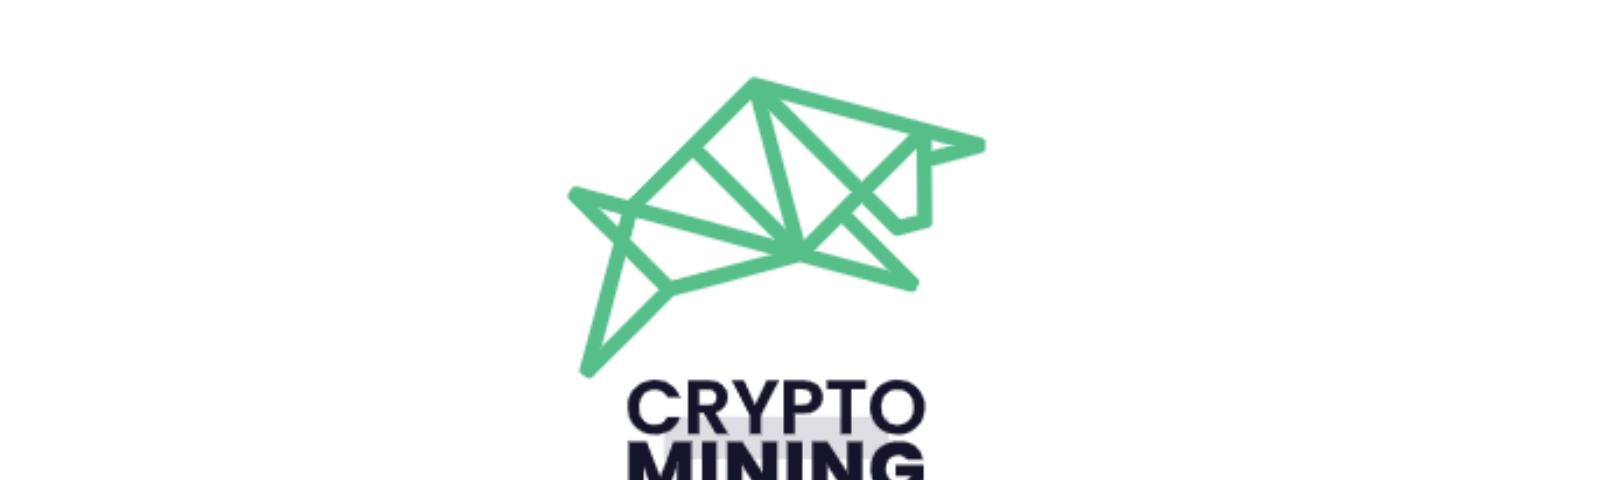 unsolvable problem cryptocurrency mining